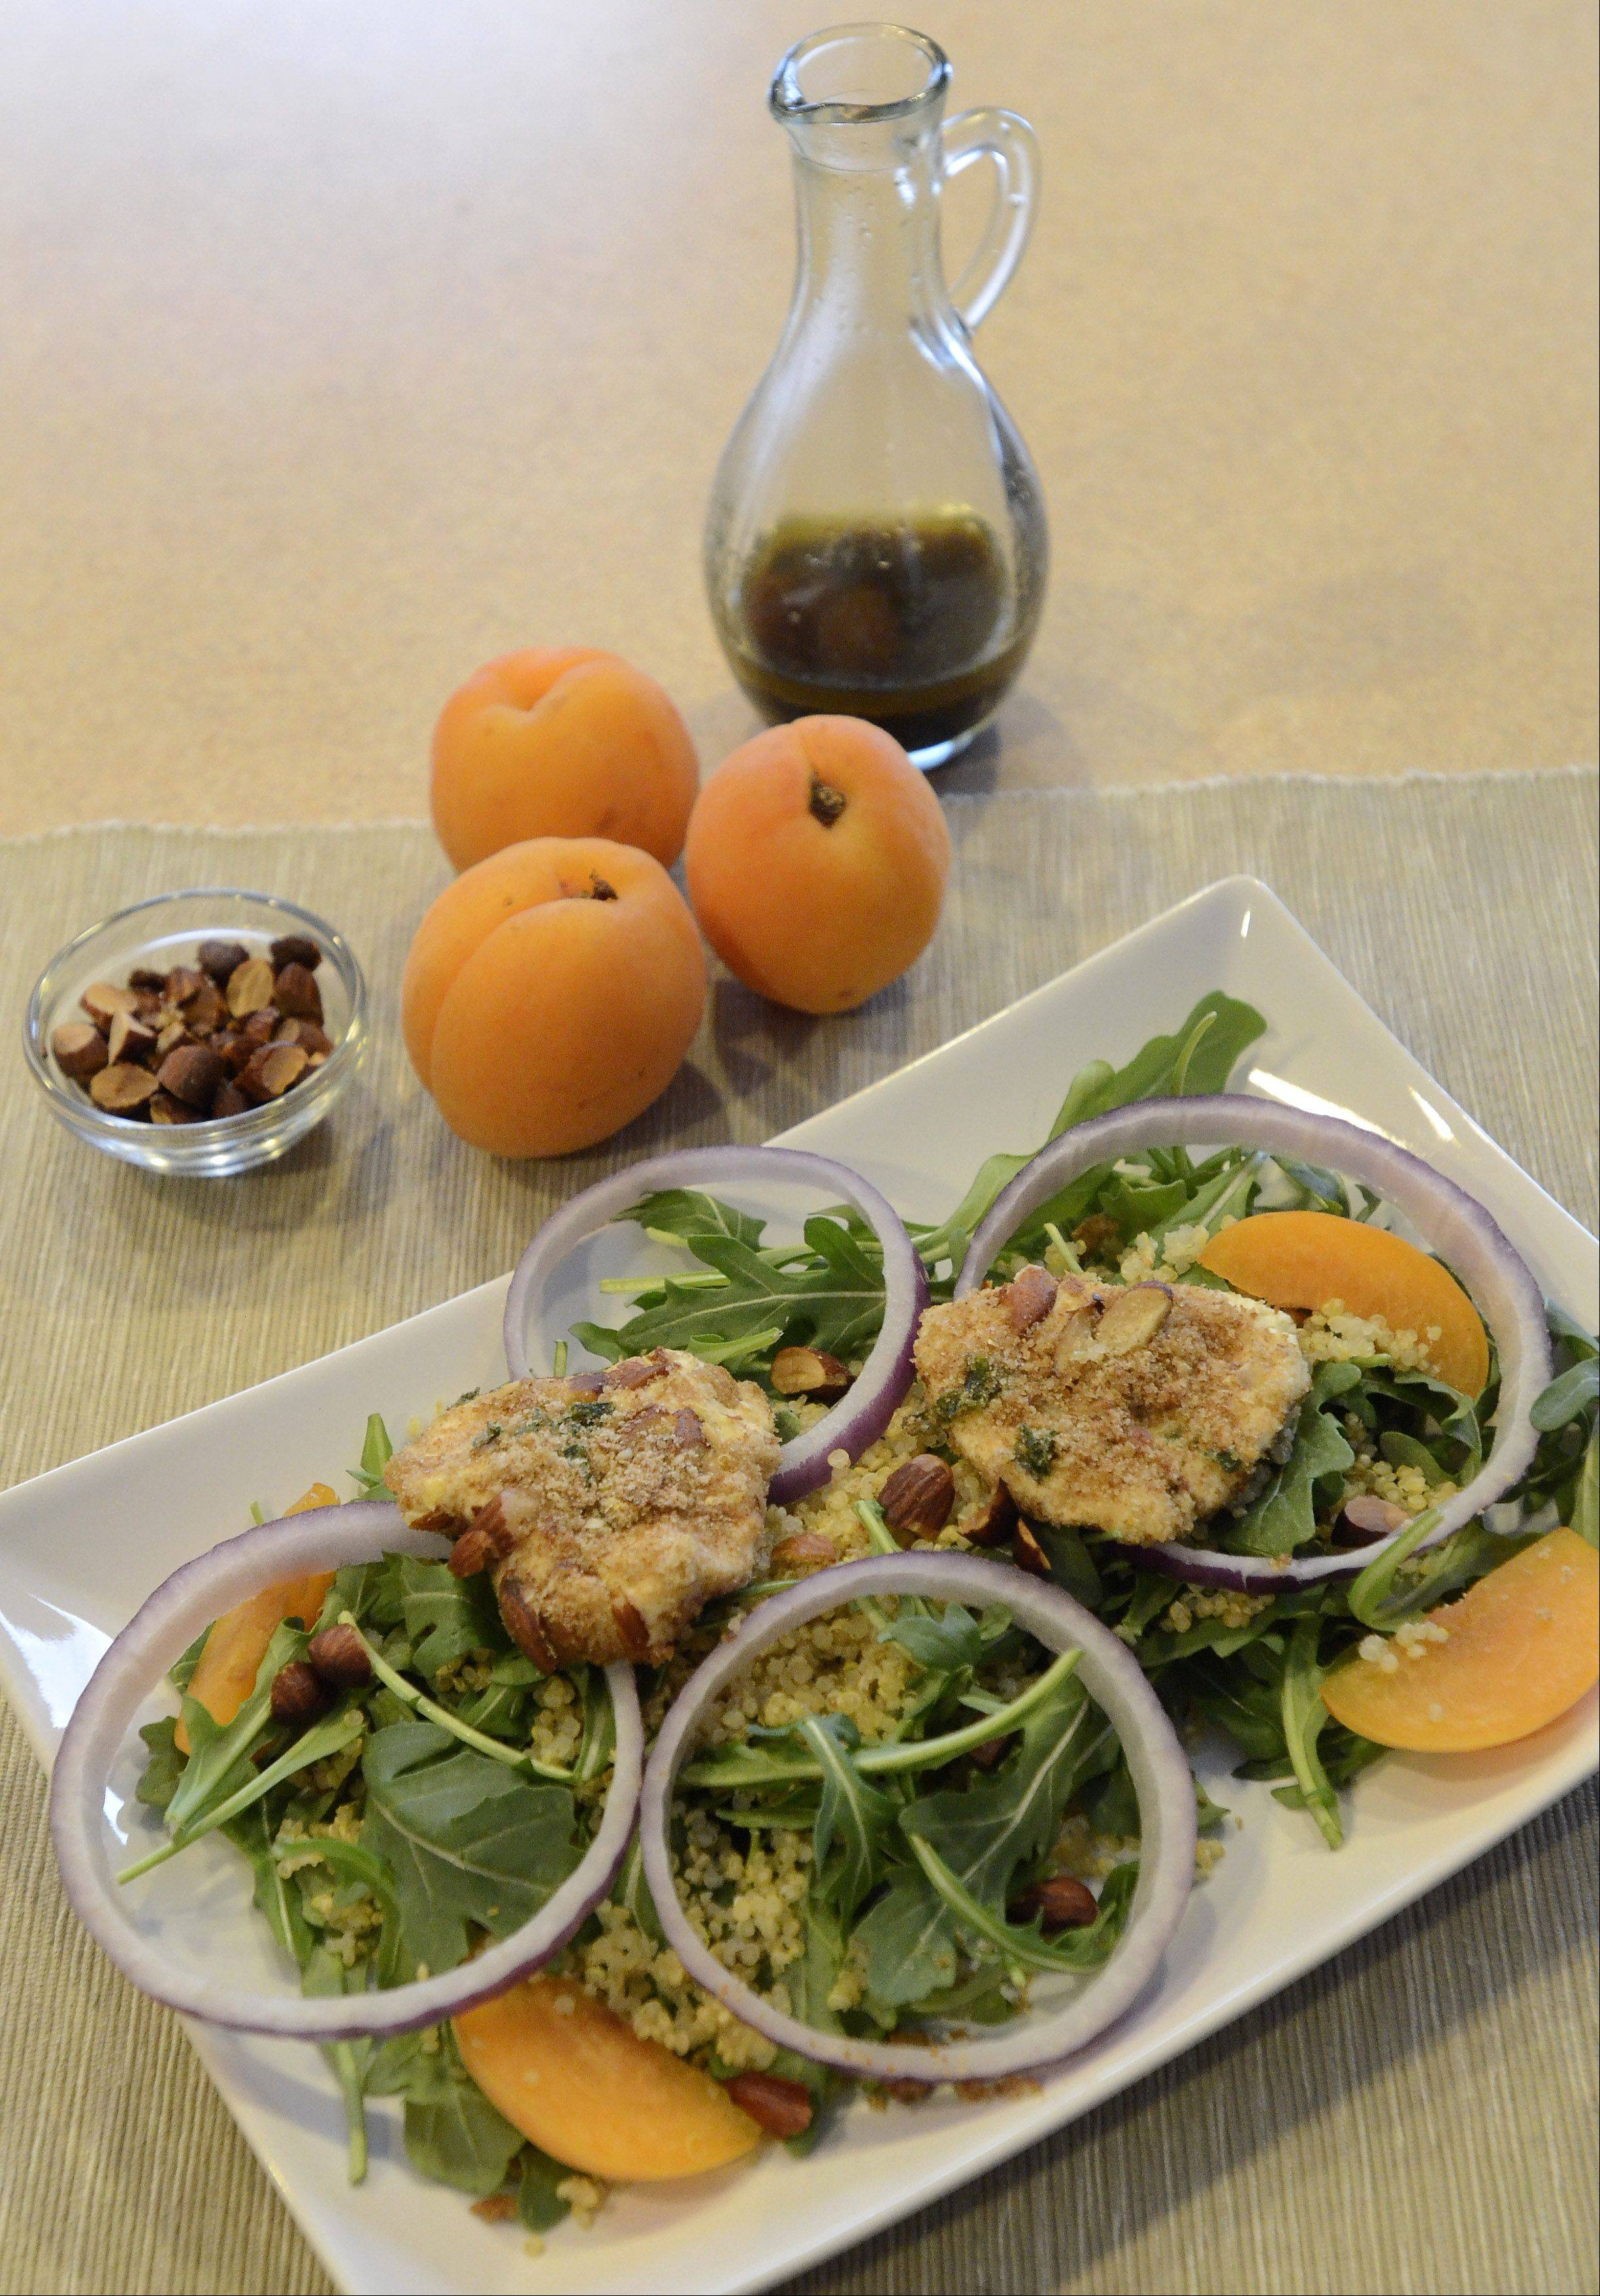 Spring Arugula Salad with Apricots and Quinoa-Almond-Crusted Goat Cheese